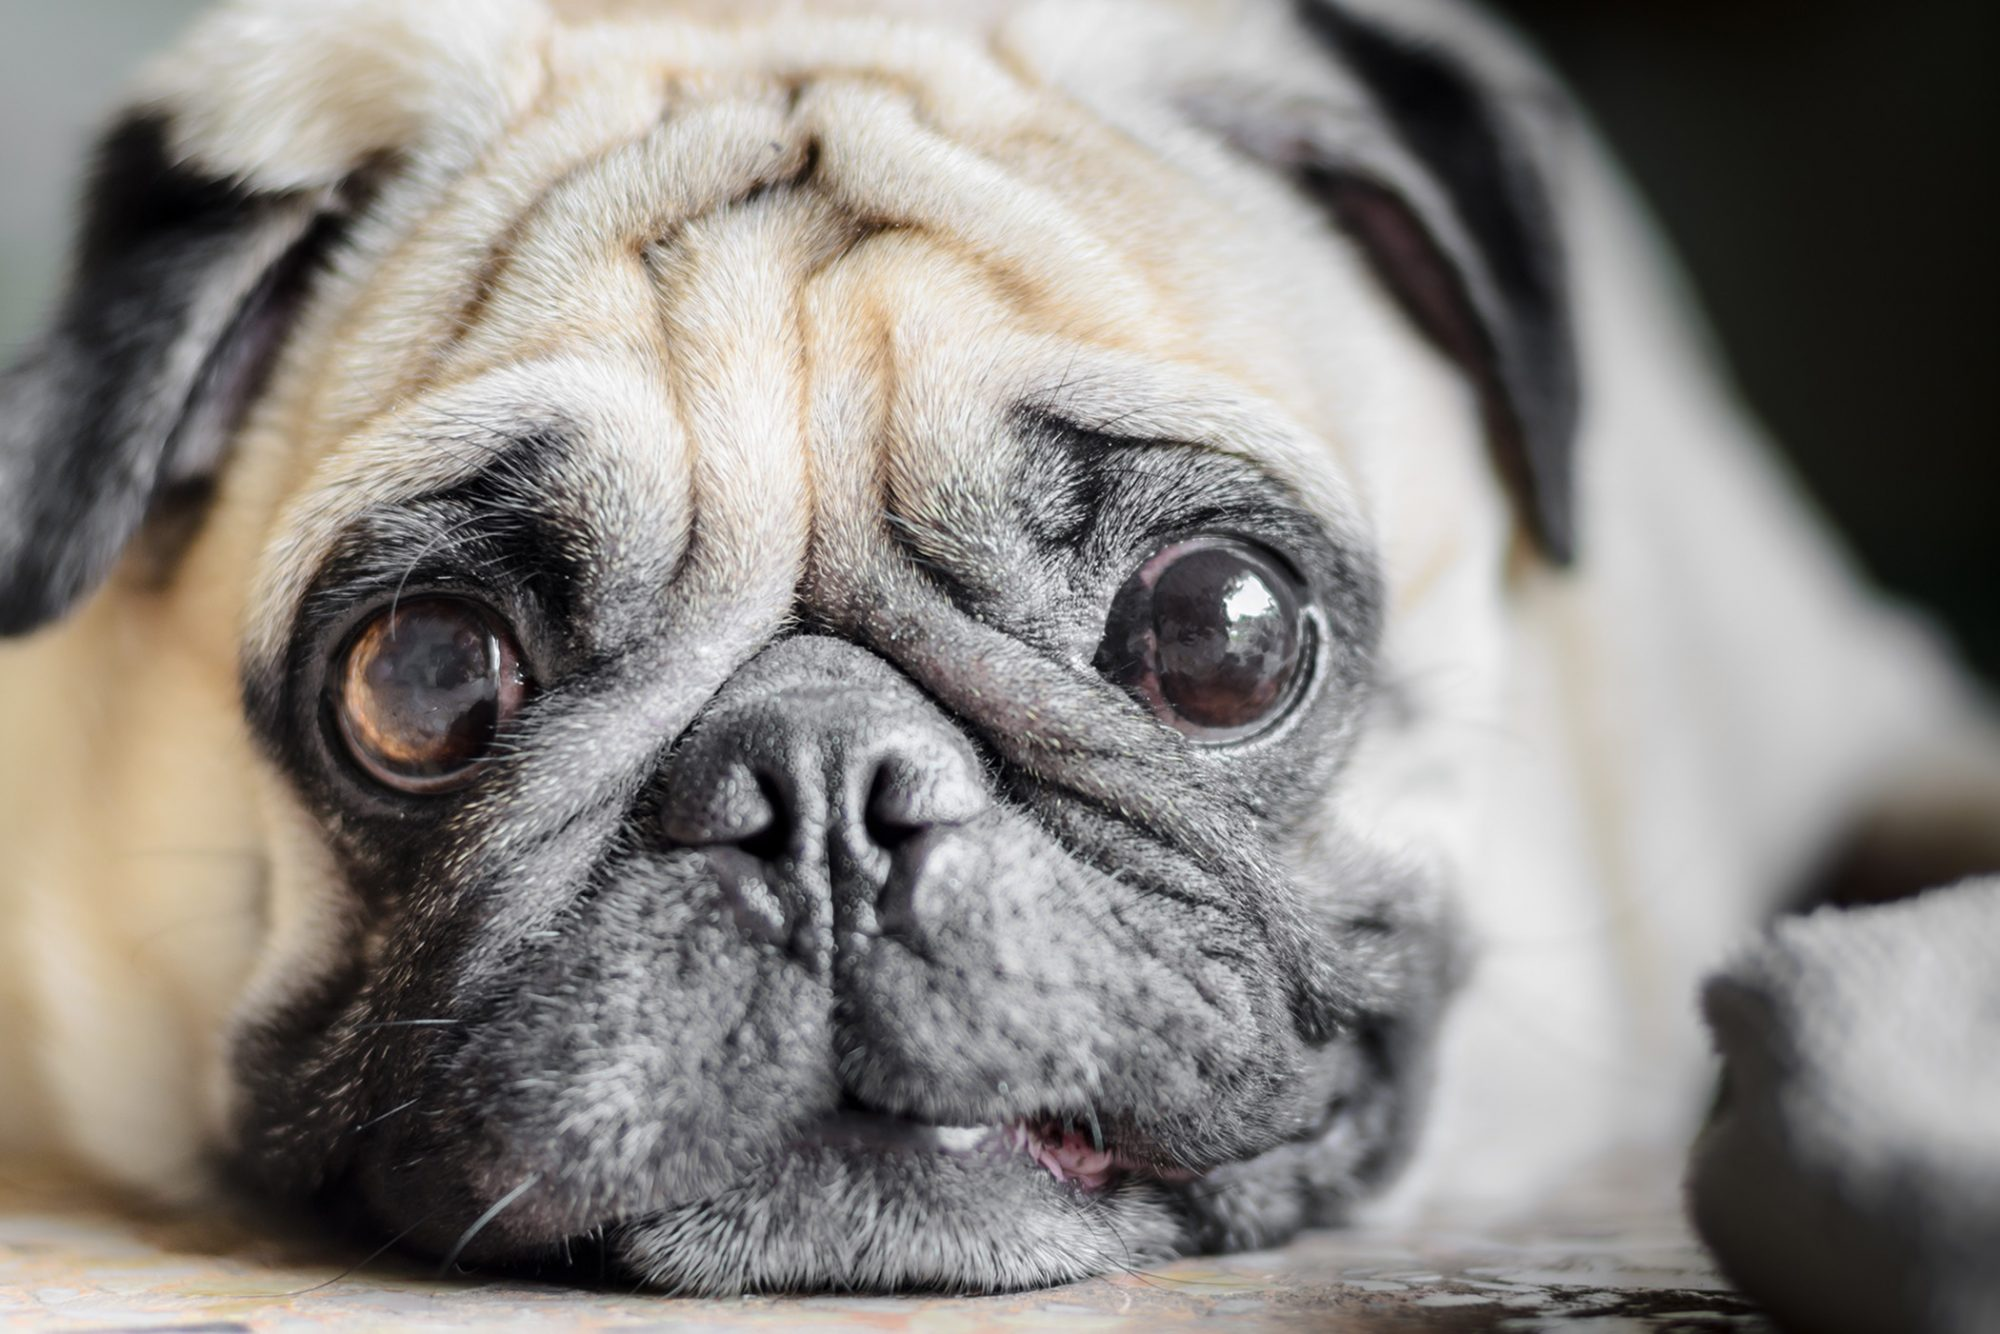 Pug dog's smushy face